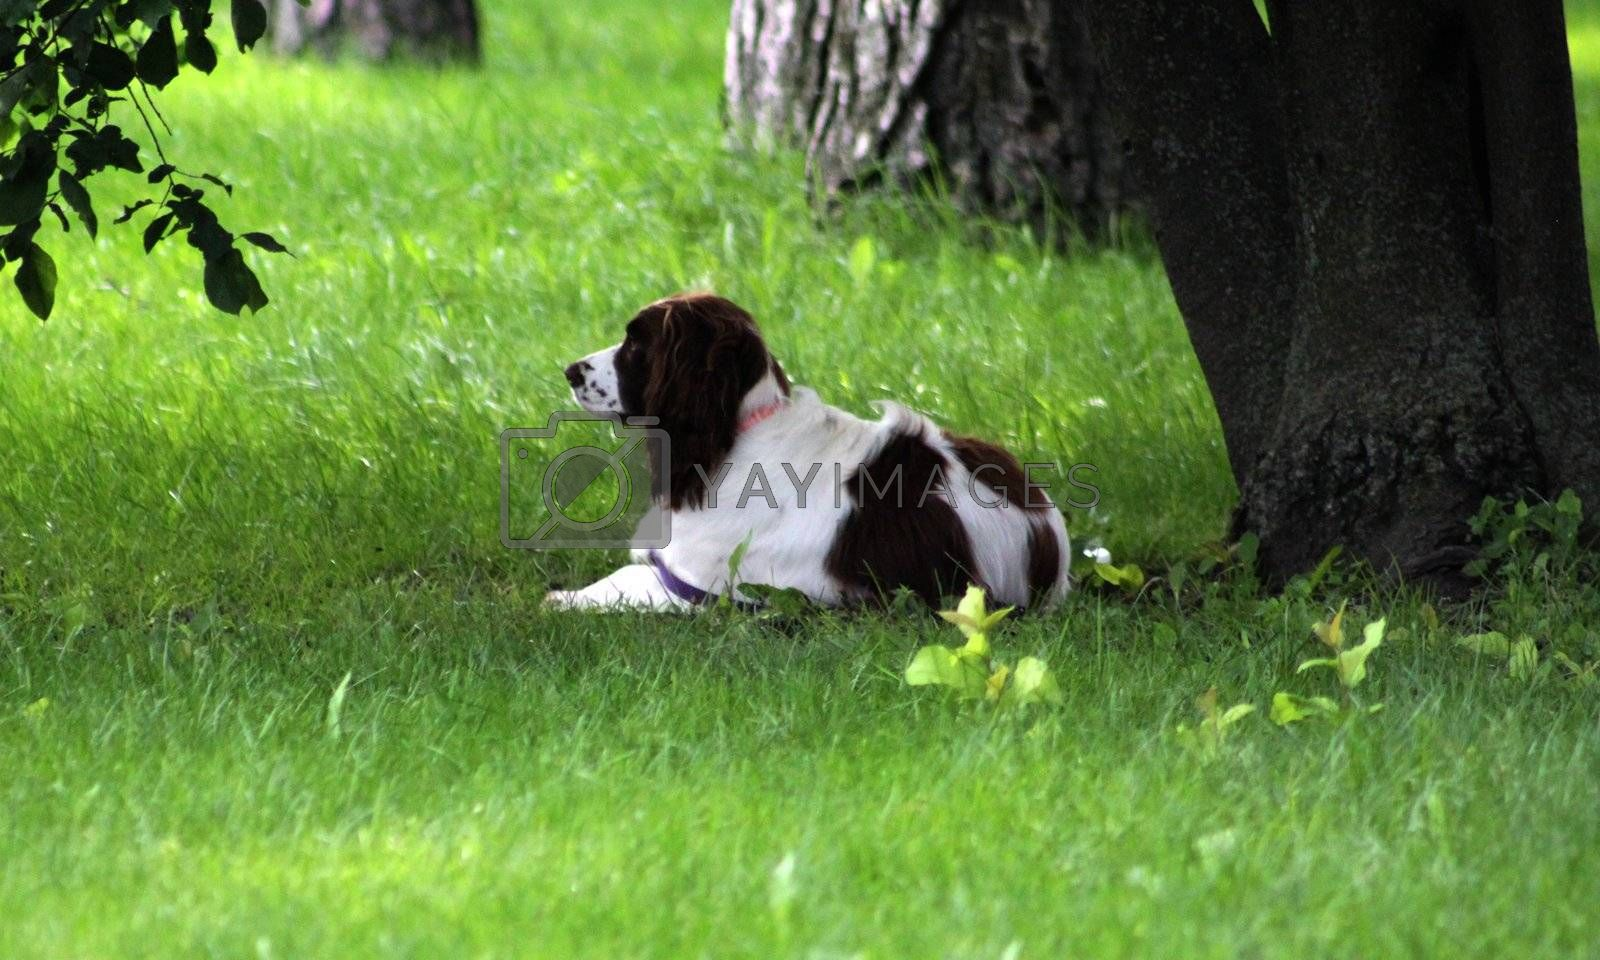 Dog taking well deserved rest under a tree